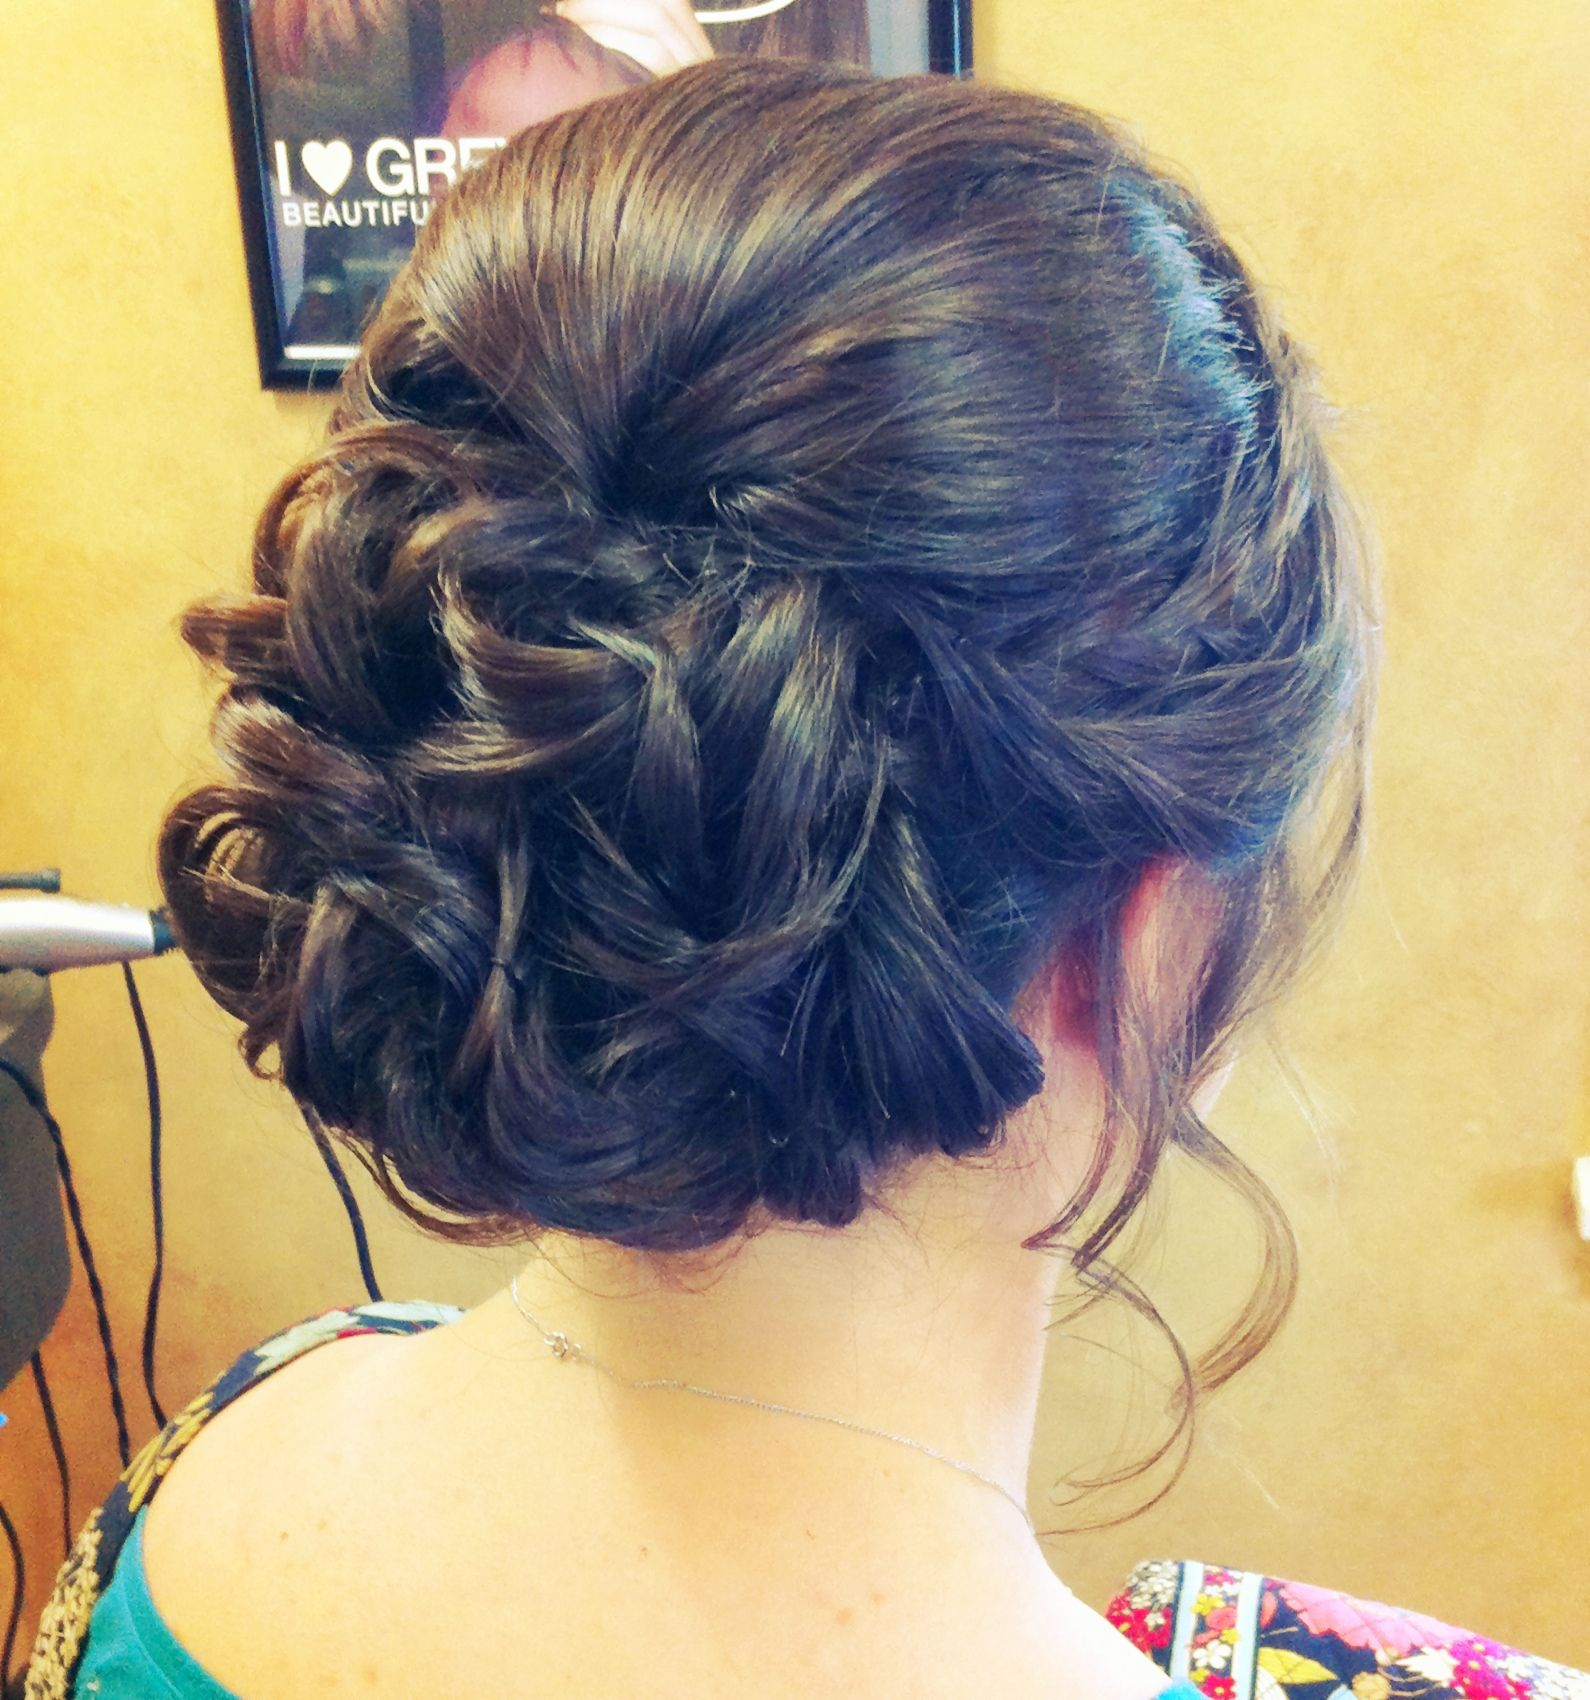 maddie's lovely updo military